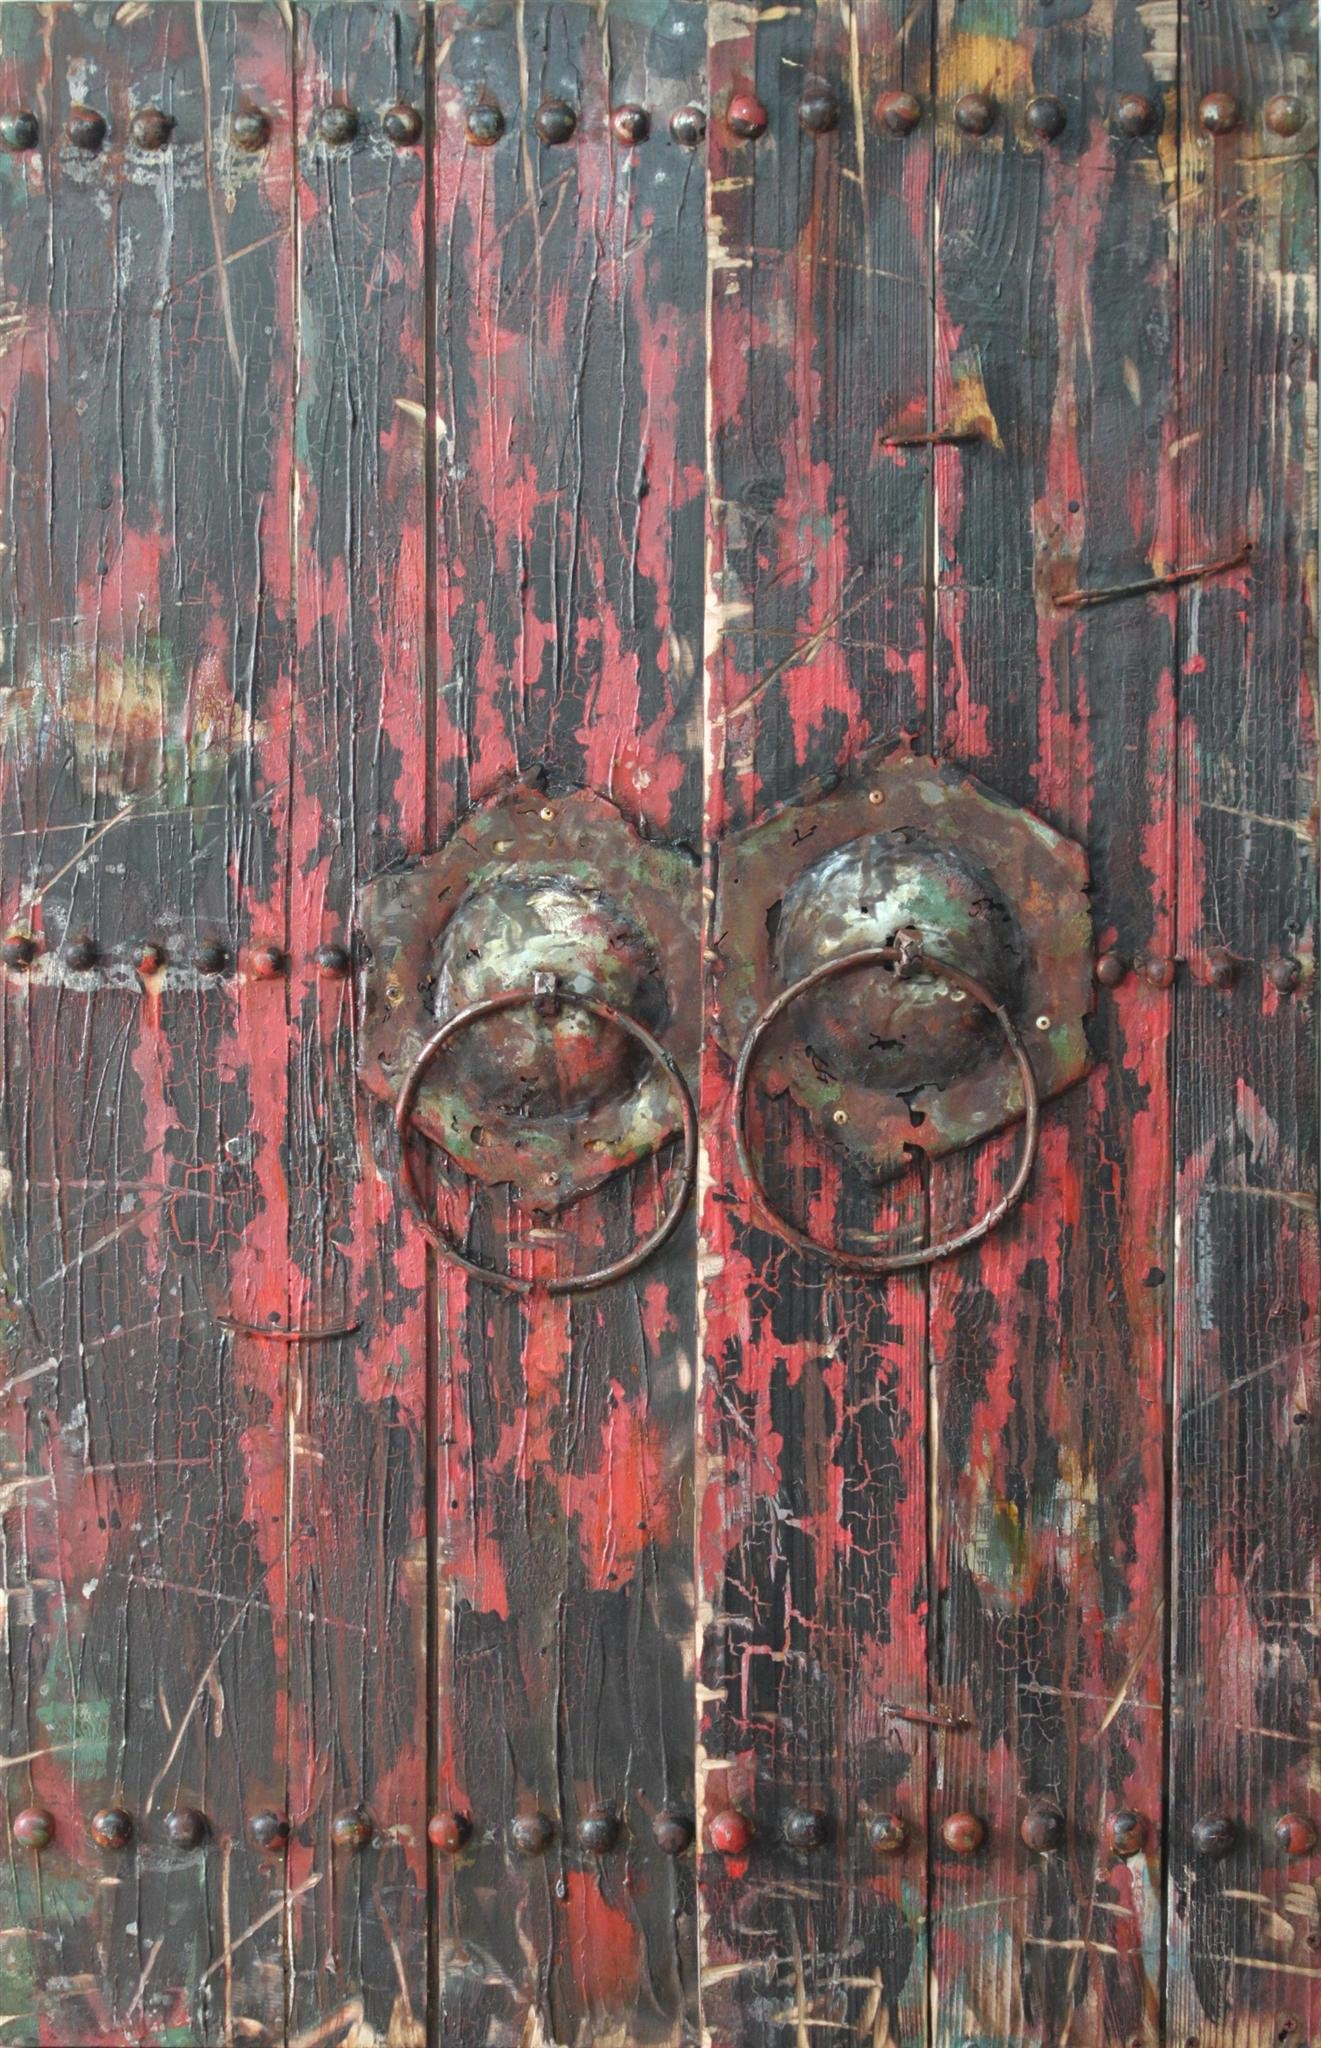 Empire Art Direct ''Antique Wooden Doors 1'' Mixed Media Hand Painted Iron Wall Sculpture by Primo